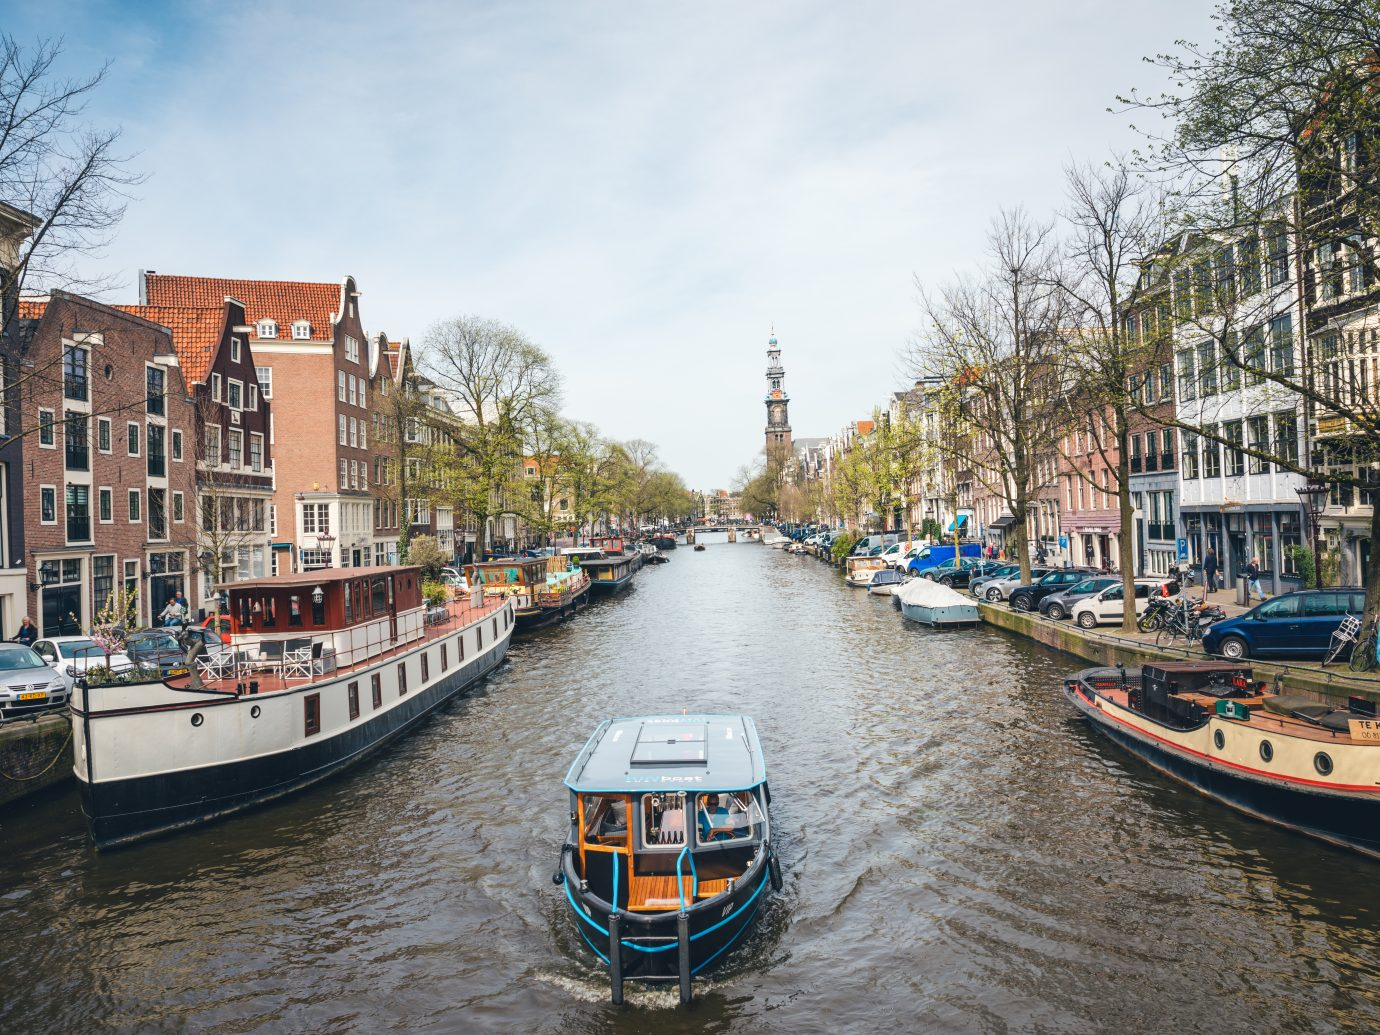 Amsterdam, Netherlands - April 17, 2018: Sightseeing boat cruising through the Prince's canal in Amsterdam. There is Westerkerk church visible in the background.